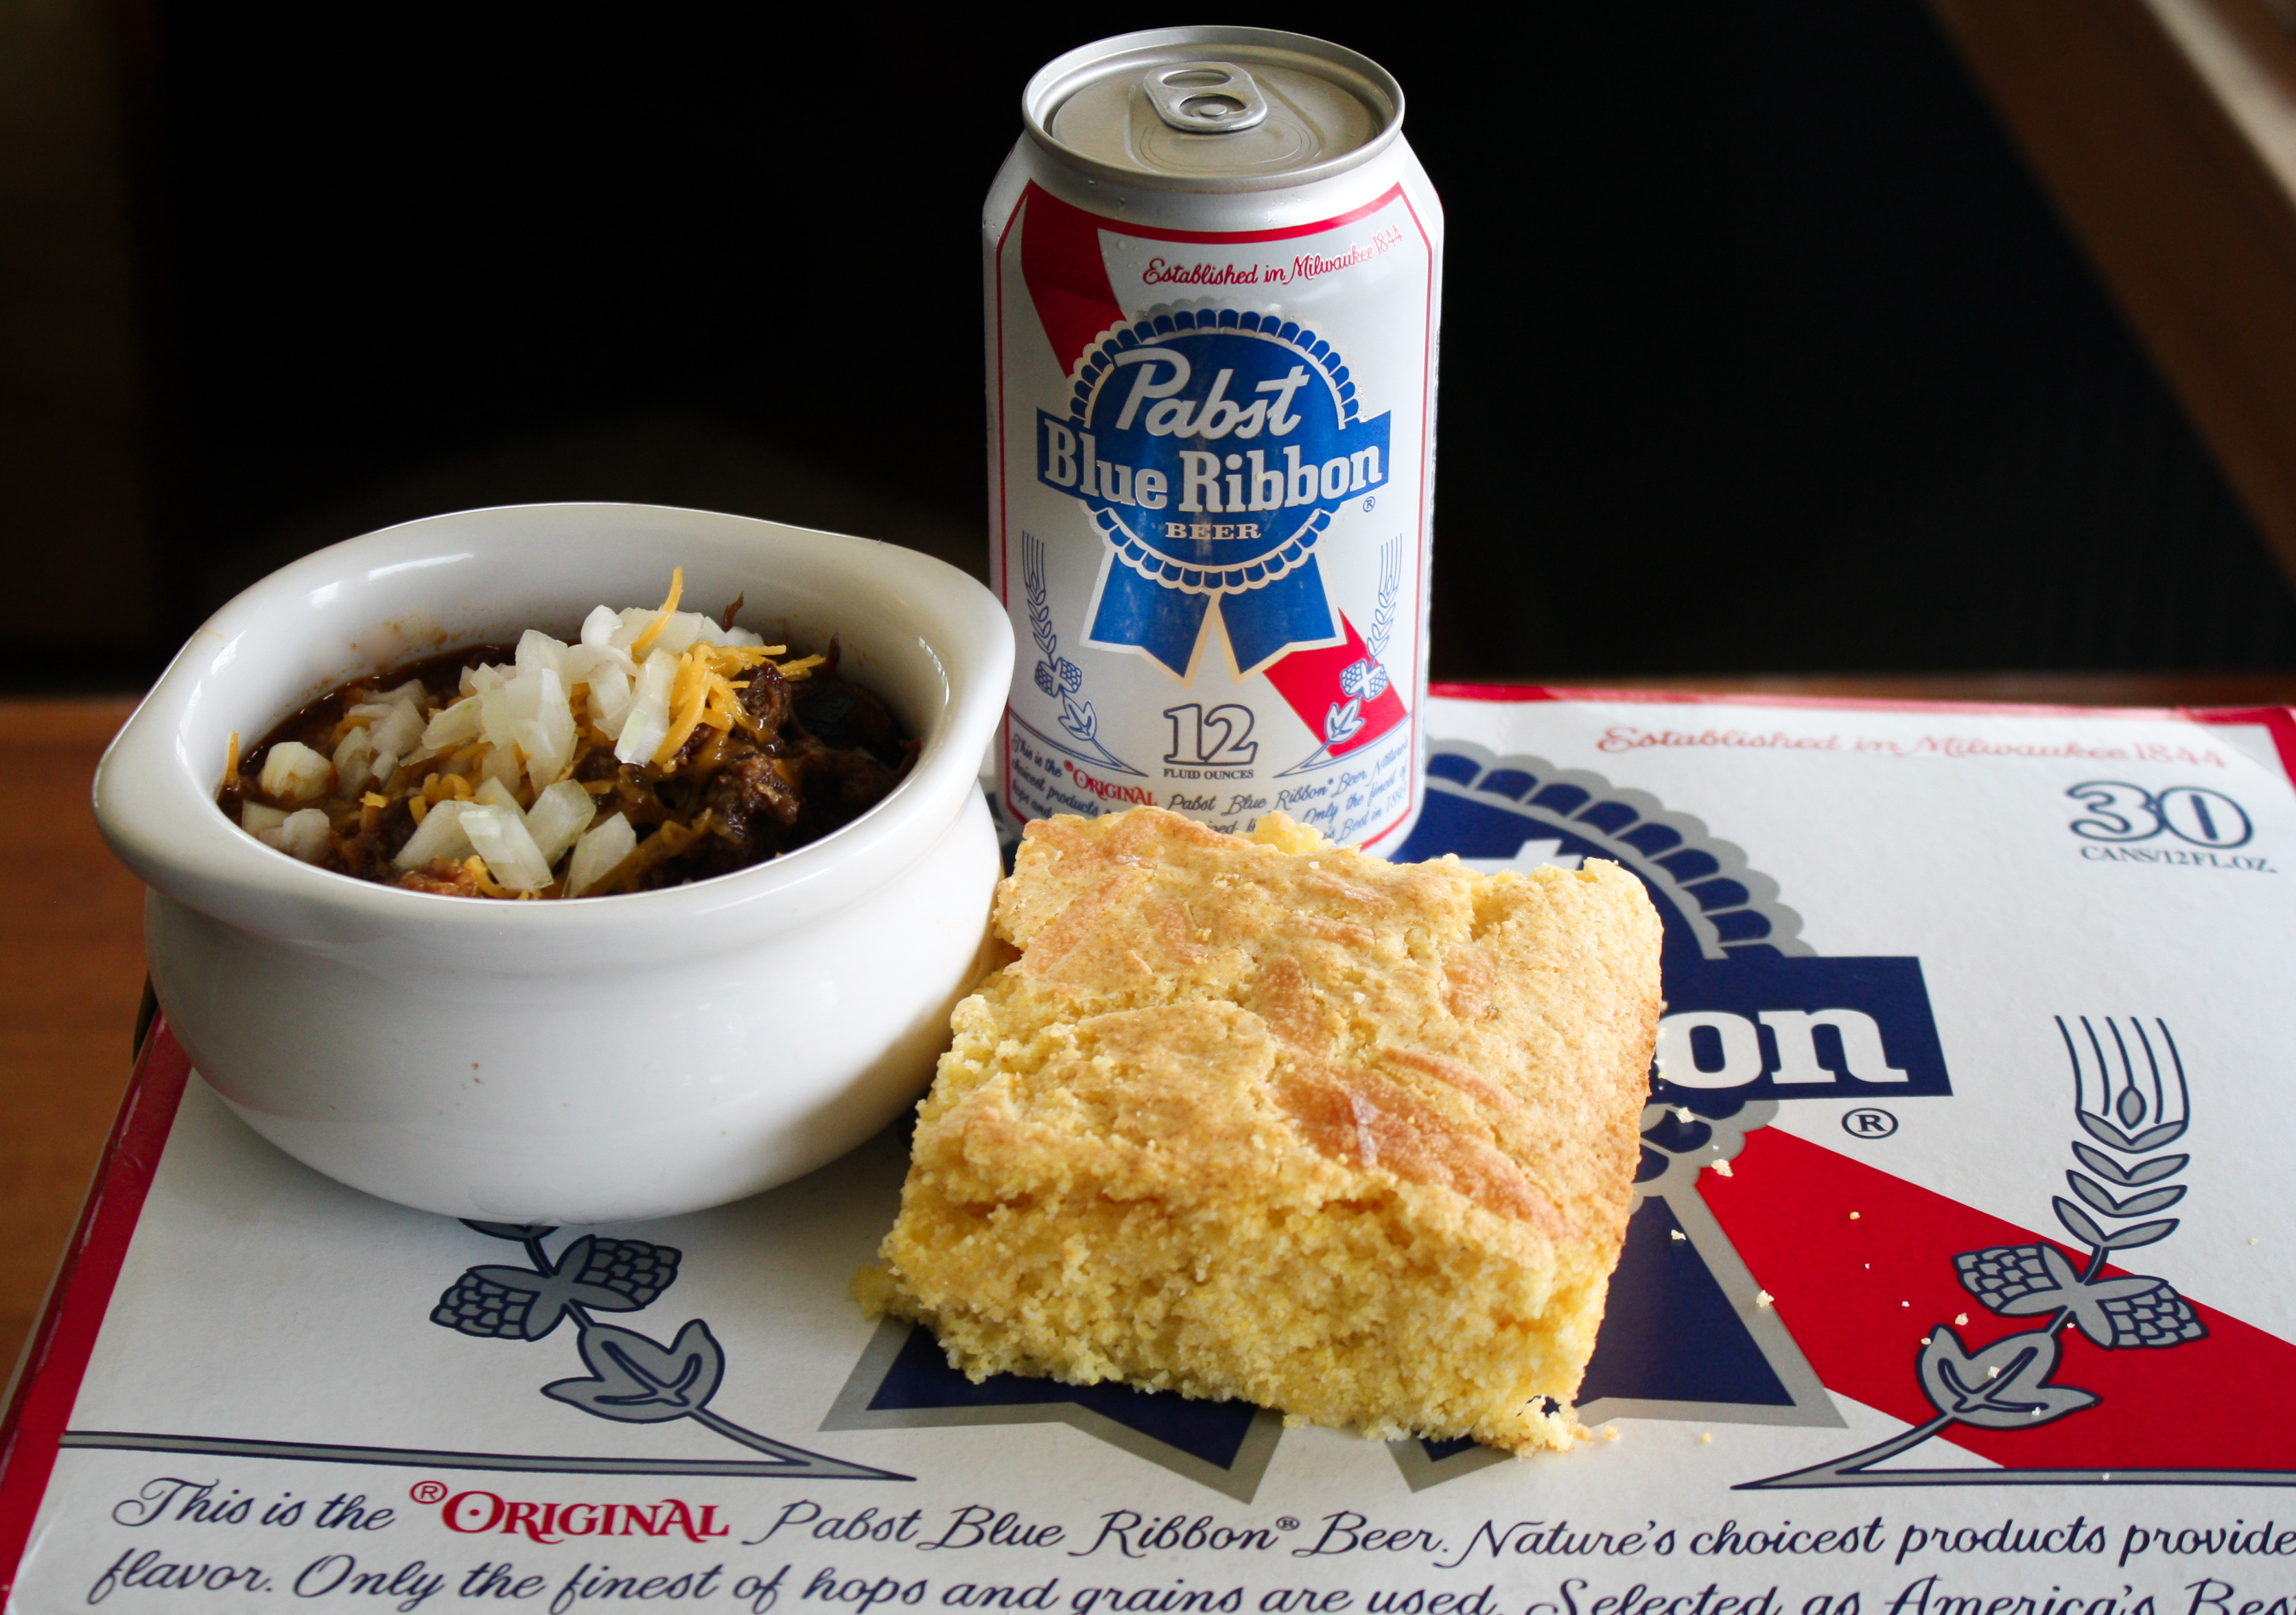 G&H Pig Palace{ }Chili & Corn Bread (Image: Chow Foods)